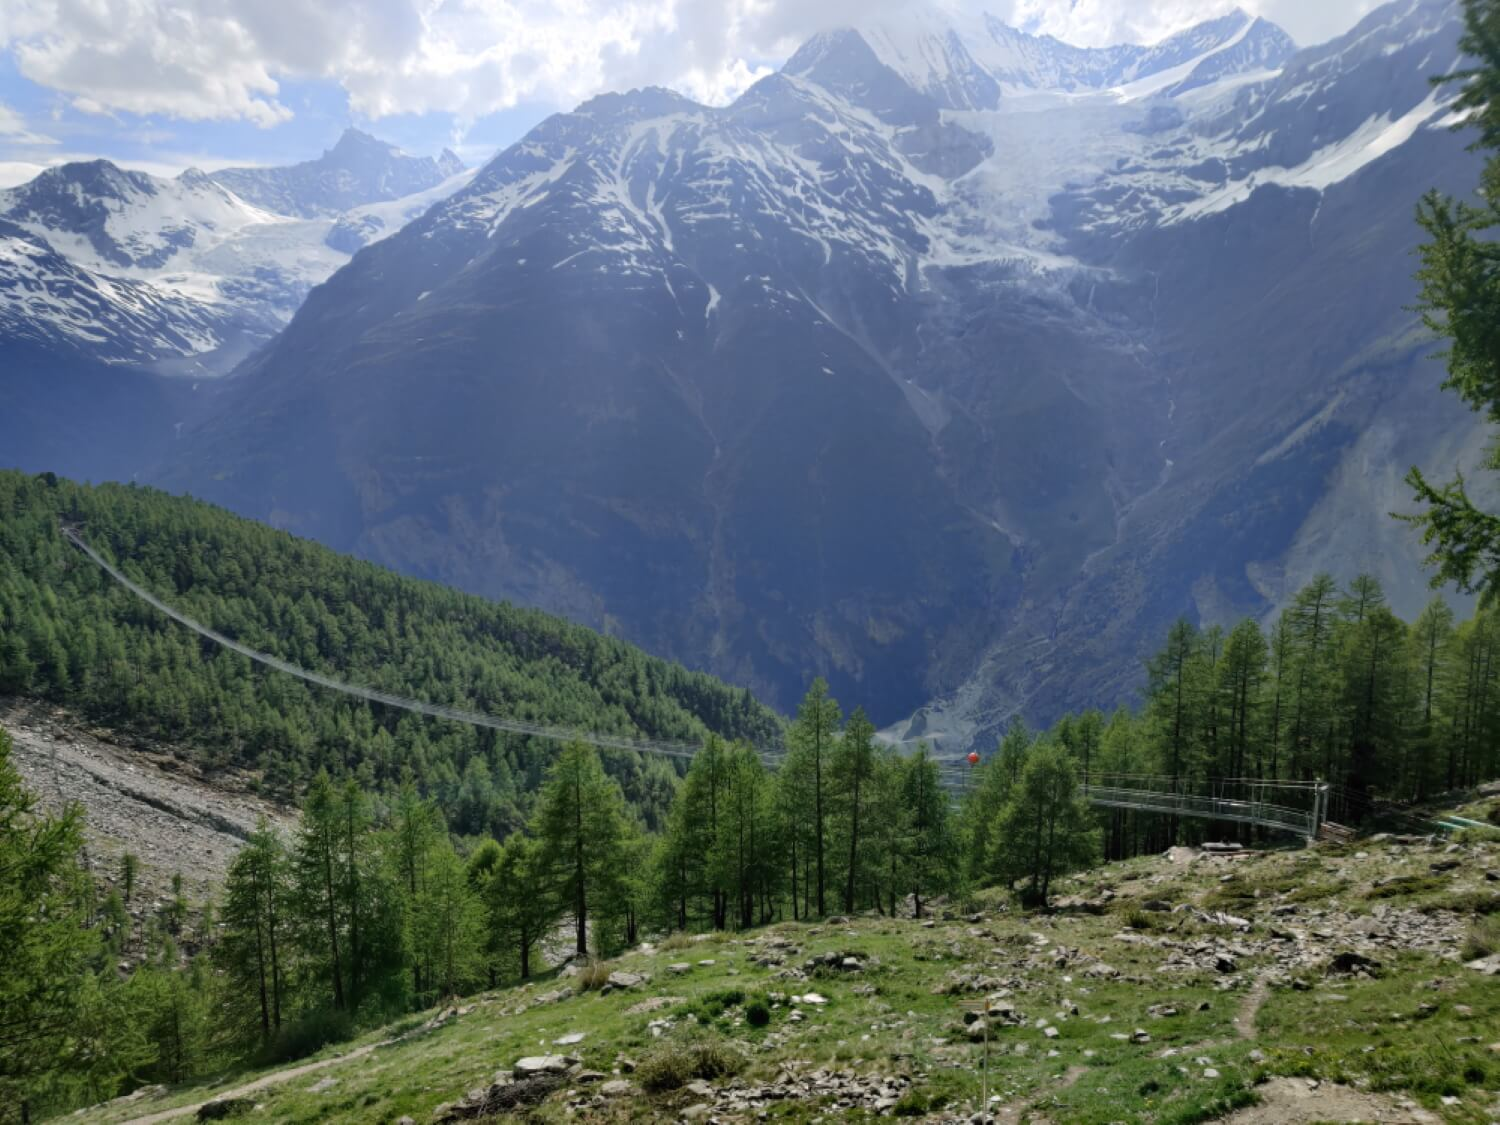 Charles Kuonen suspension bridge:  The Europaweg trail is open from the bridge to Zermatt